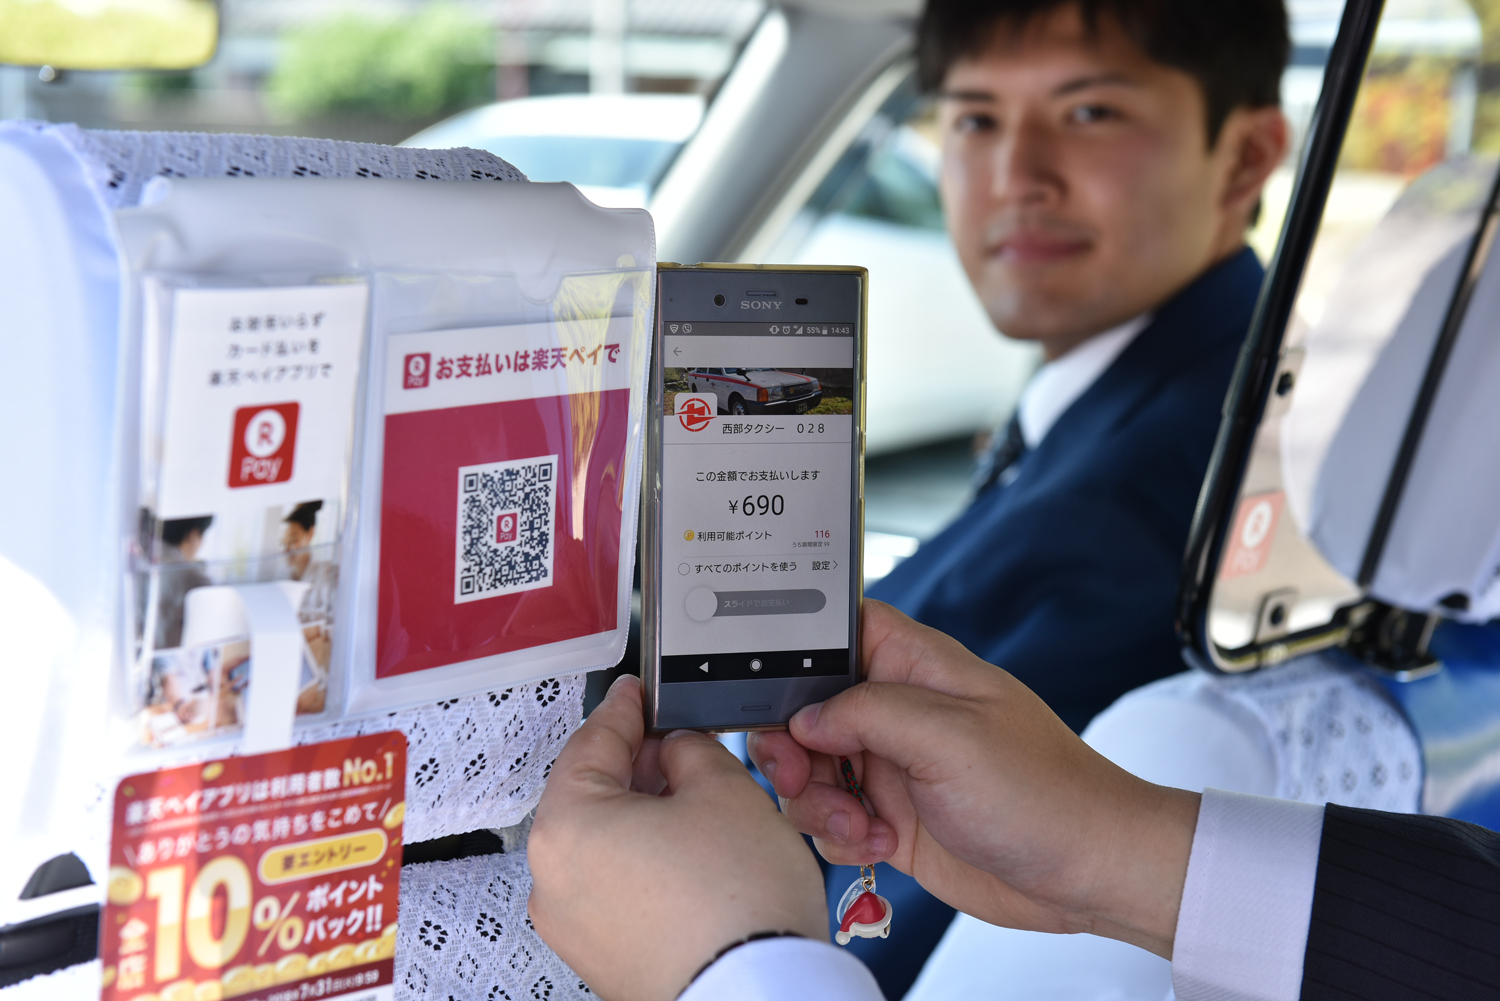 Japan's top mobile payments solution